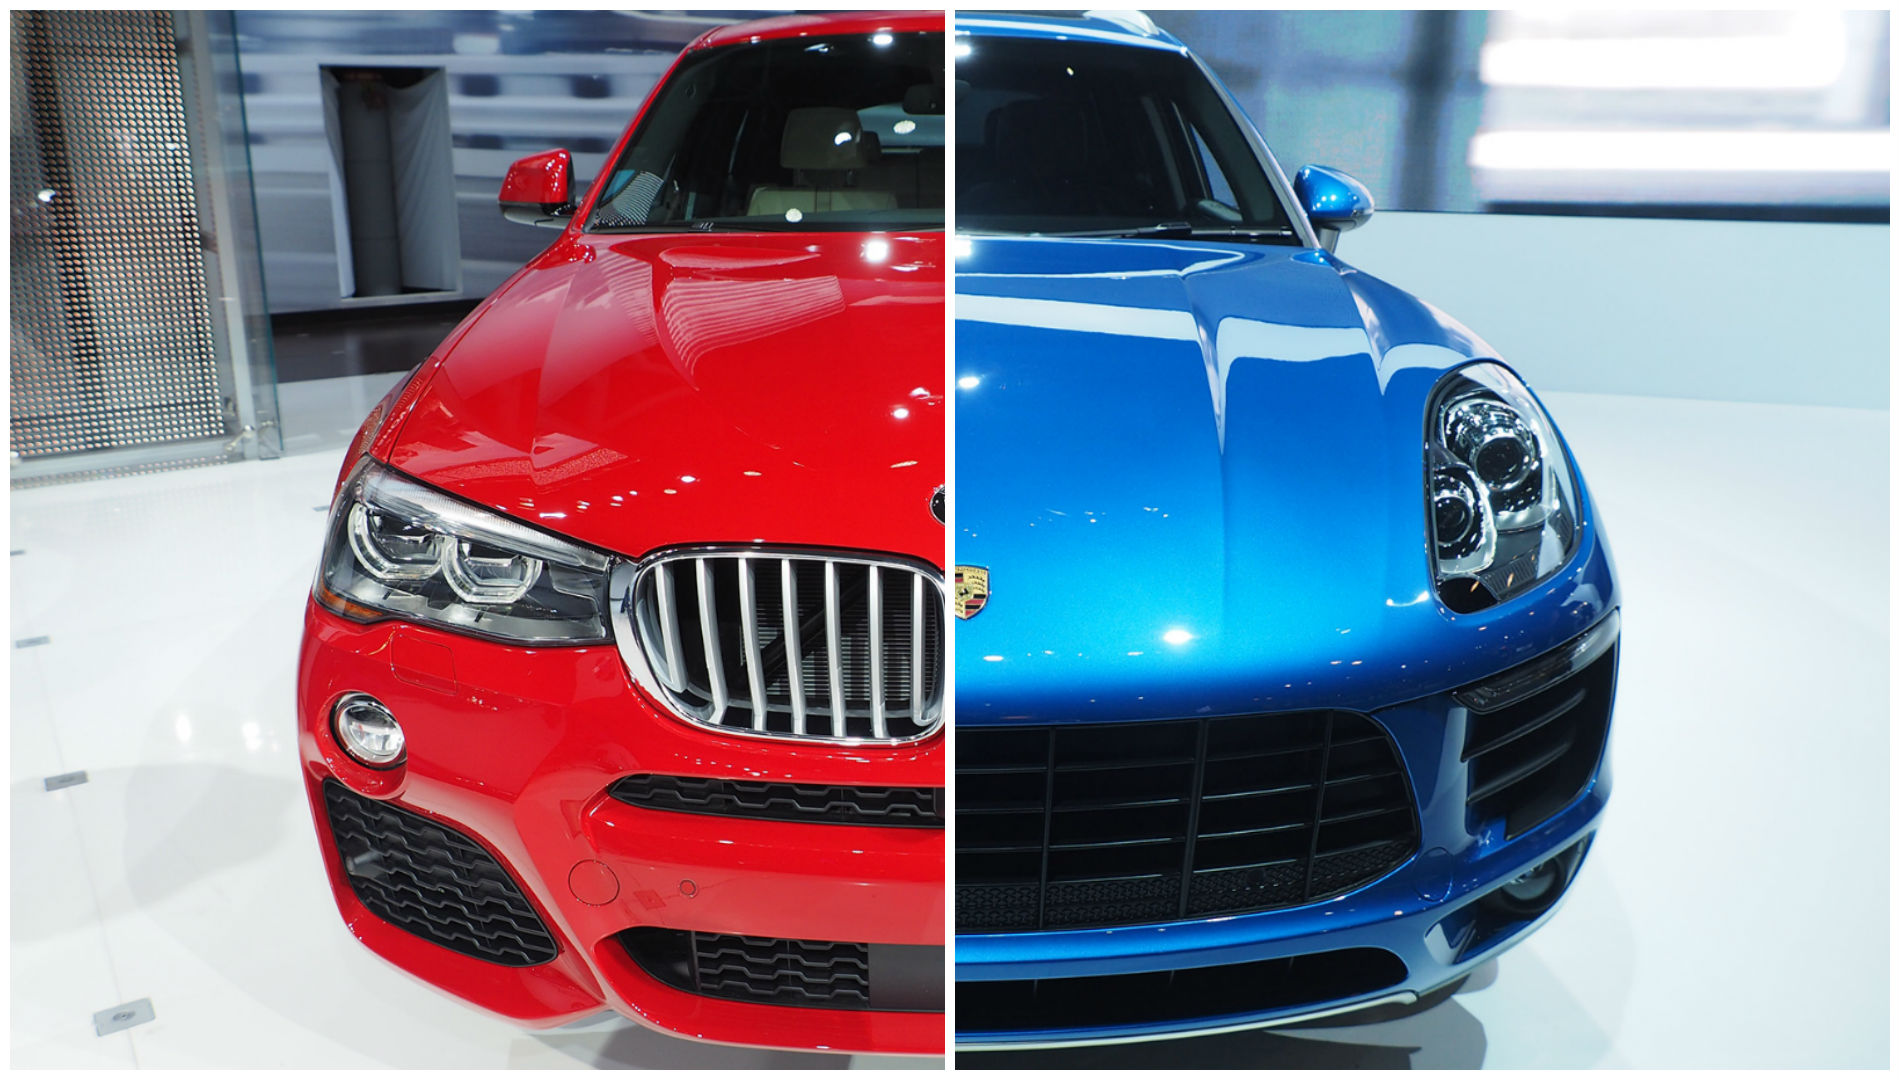 BMW X4 vs Porsche Macan: Which Would You Have? - autoevolution